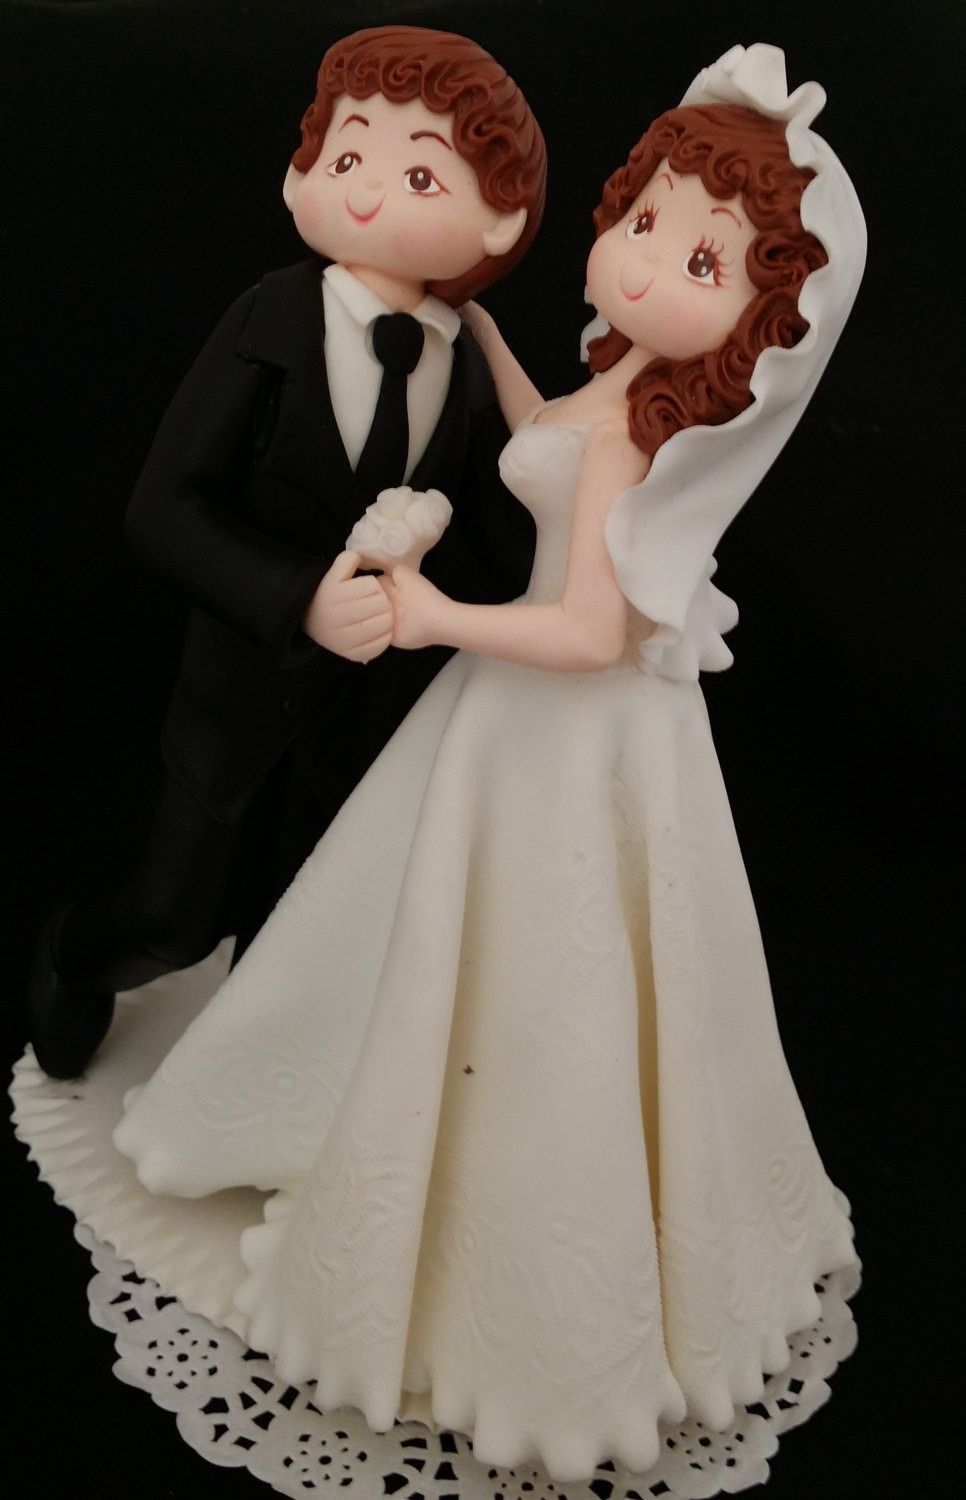 Beautiful Wedding Cake Topper Bride In White Dress With Veil Groom Black Tuxedo Dancing